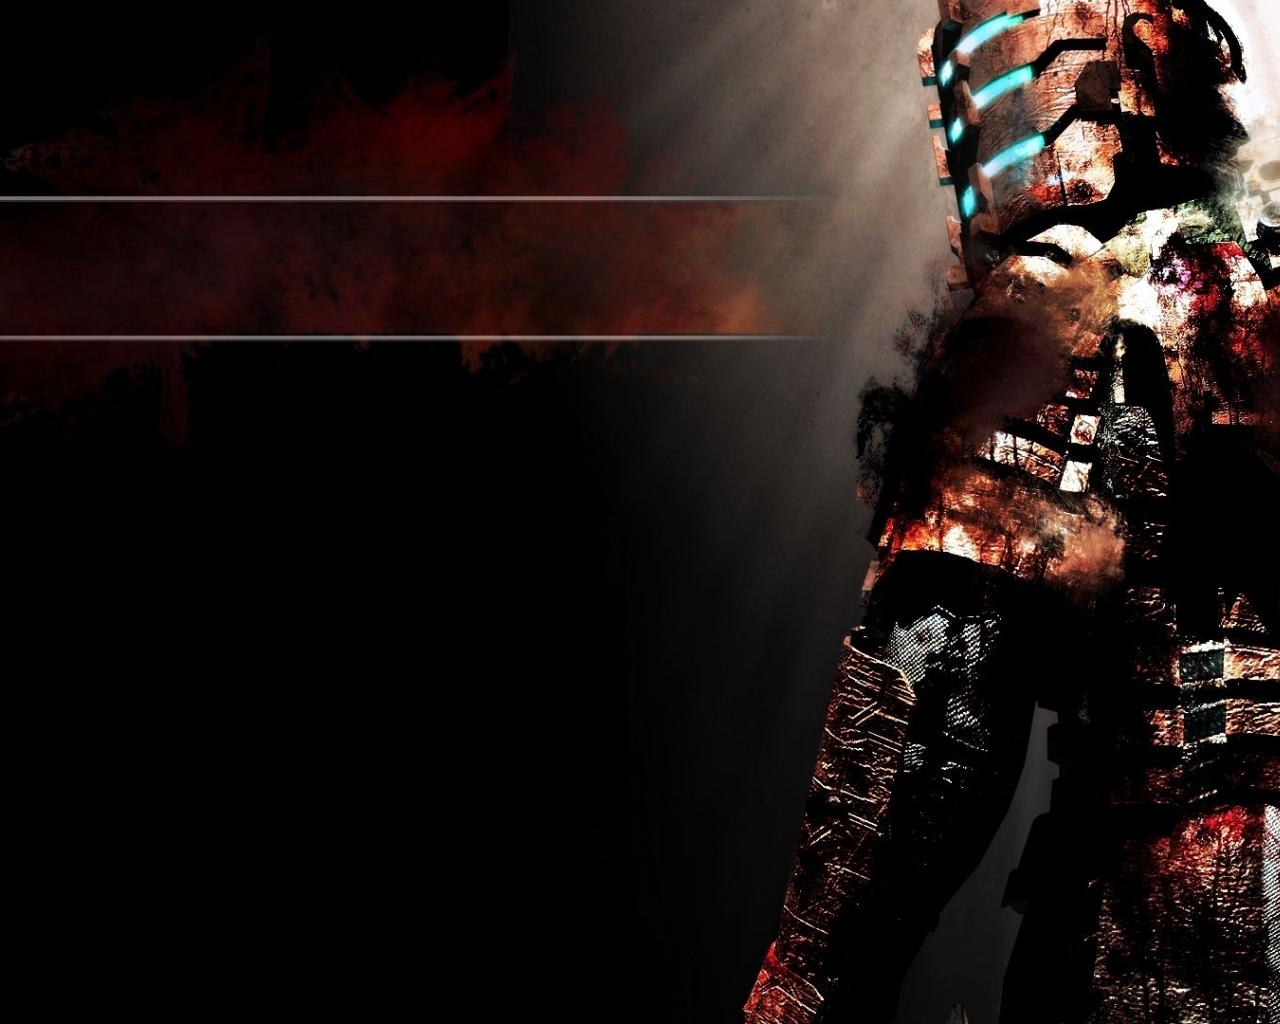 Free Download Blood Gore Dead Space Badass Game Hd Wallpaper